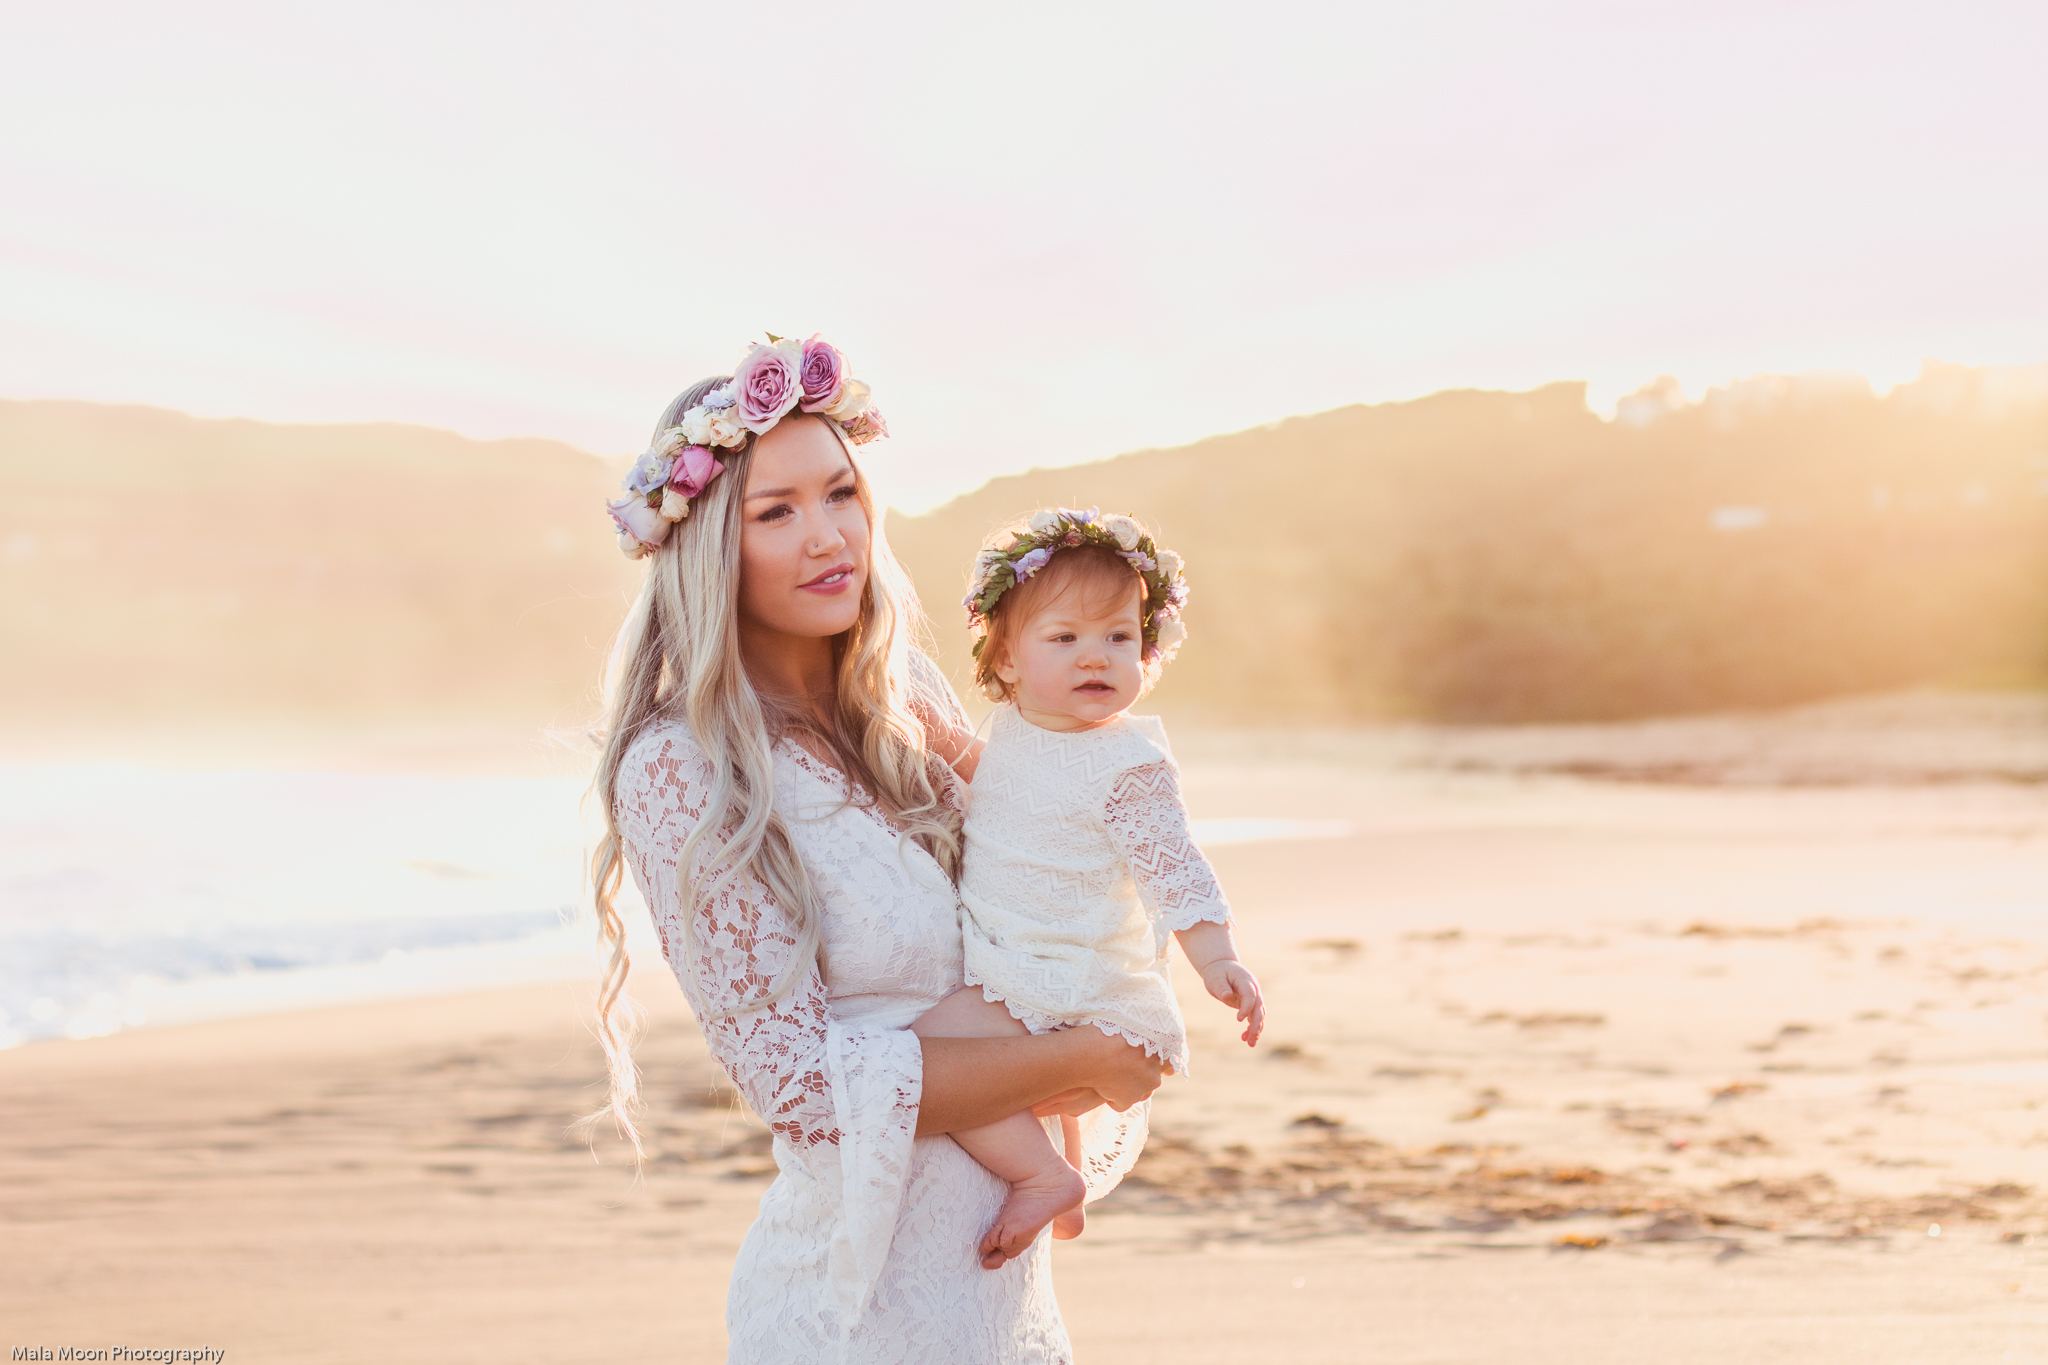 mum-and-daughter-on-the-beach-at-sunset